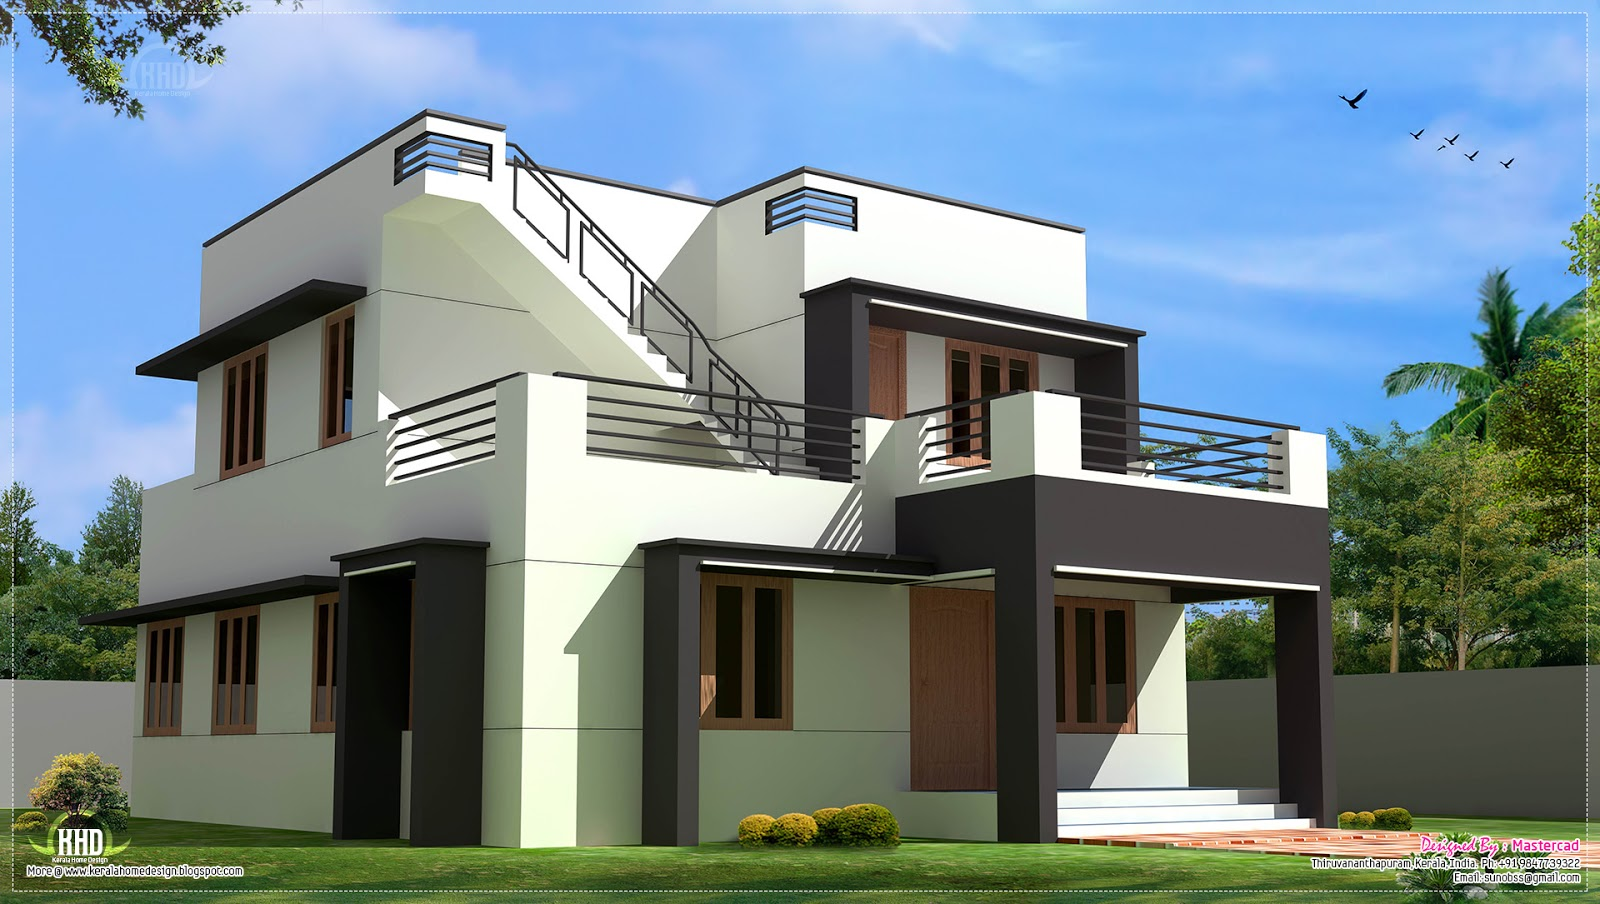 Home remodeling design modern villa design home design for Contemporary home plans free